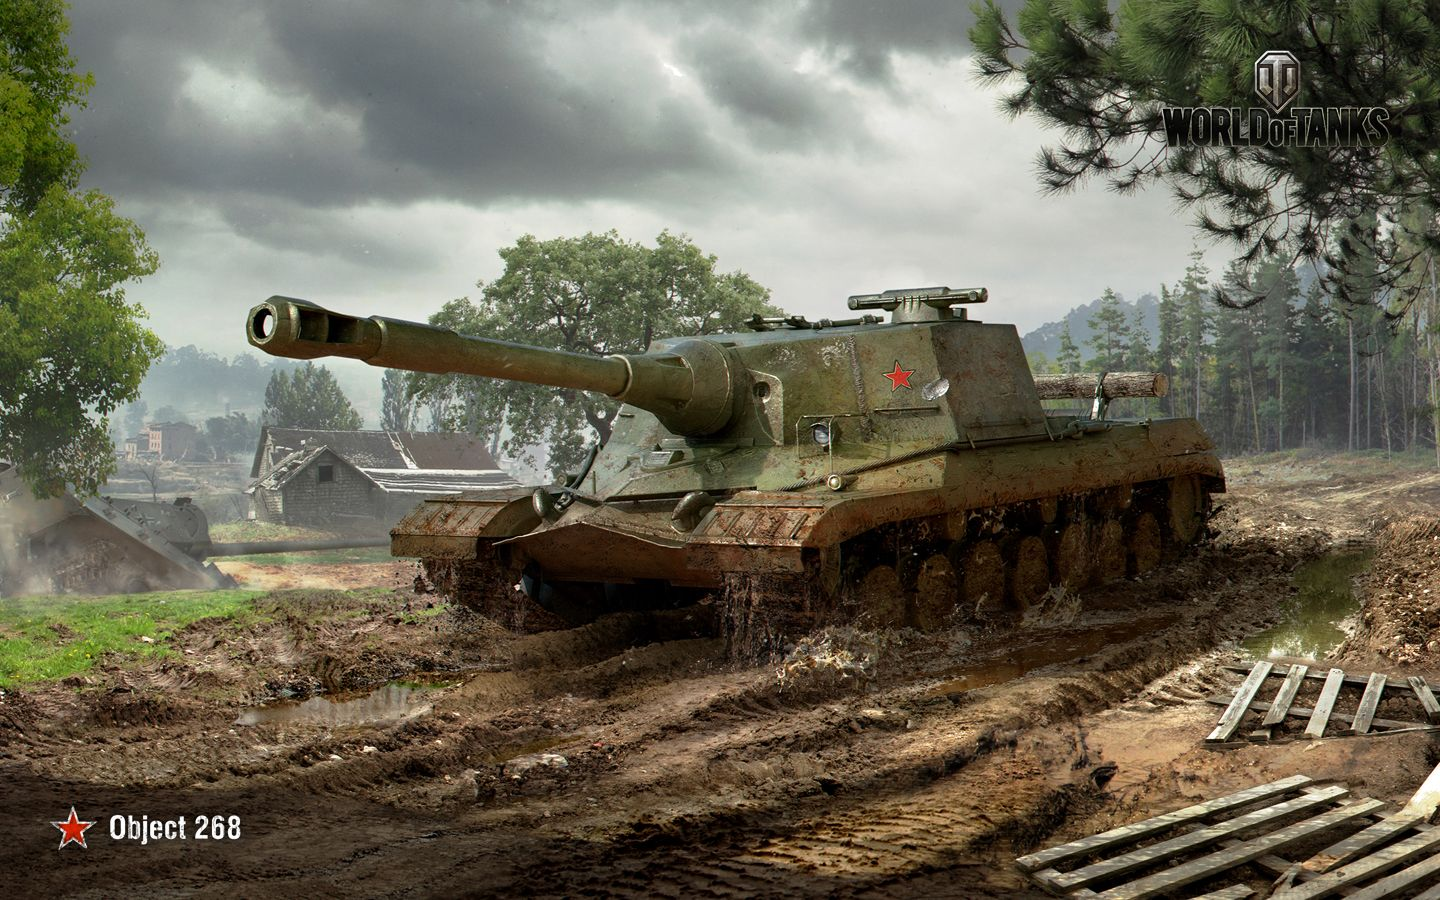 Army Tank Backgrounds Tank wallpaper World of tanks Army tanks 1440x900